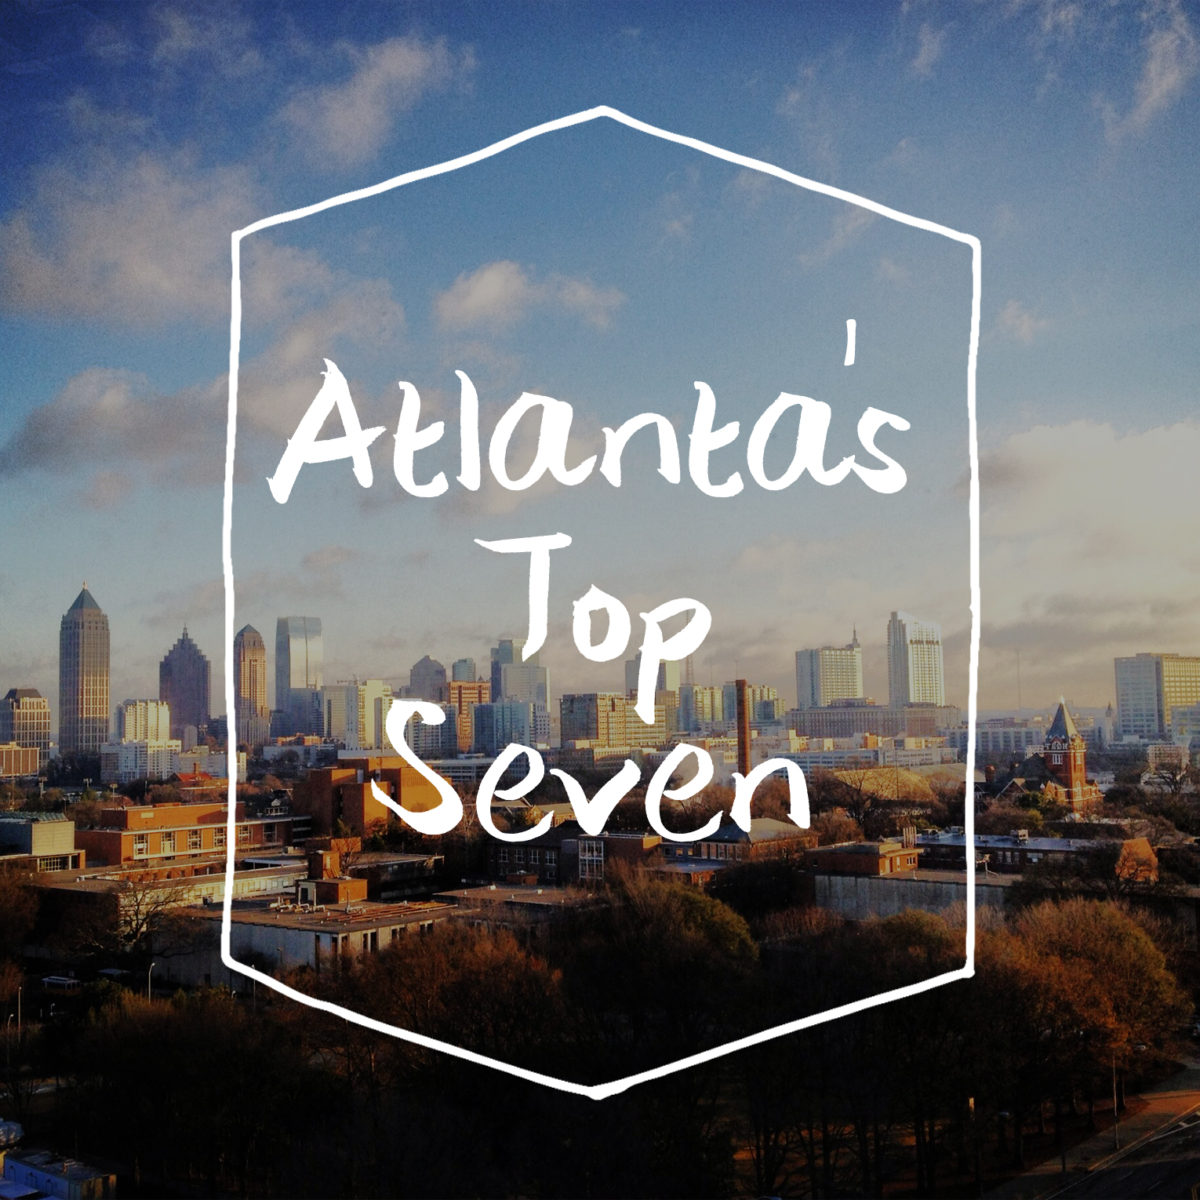 Best Places To Vacation In March In Teh Southern Us: Top 7 Places To Visit In Atlanta